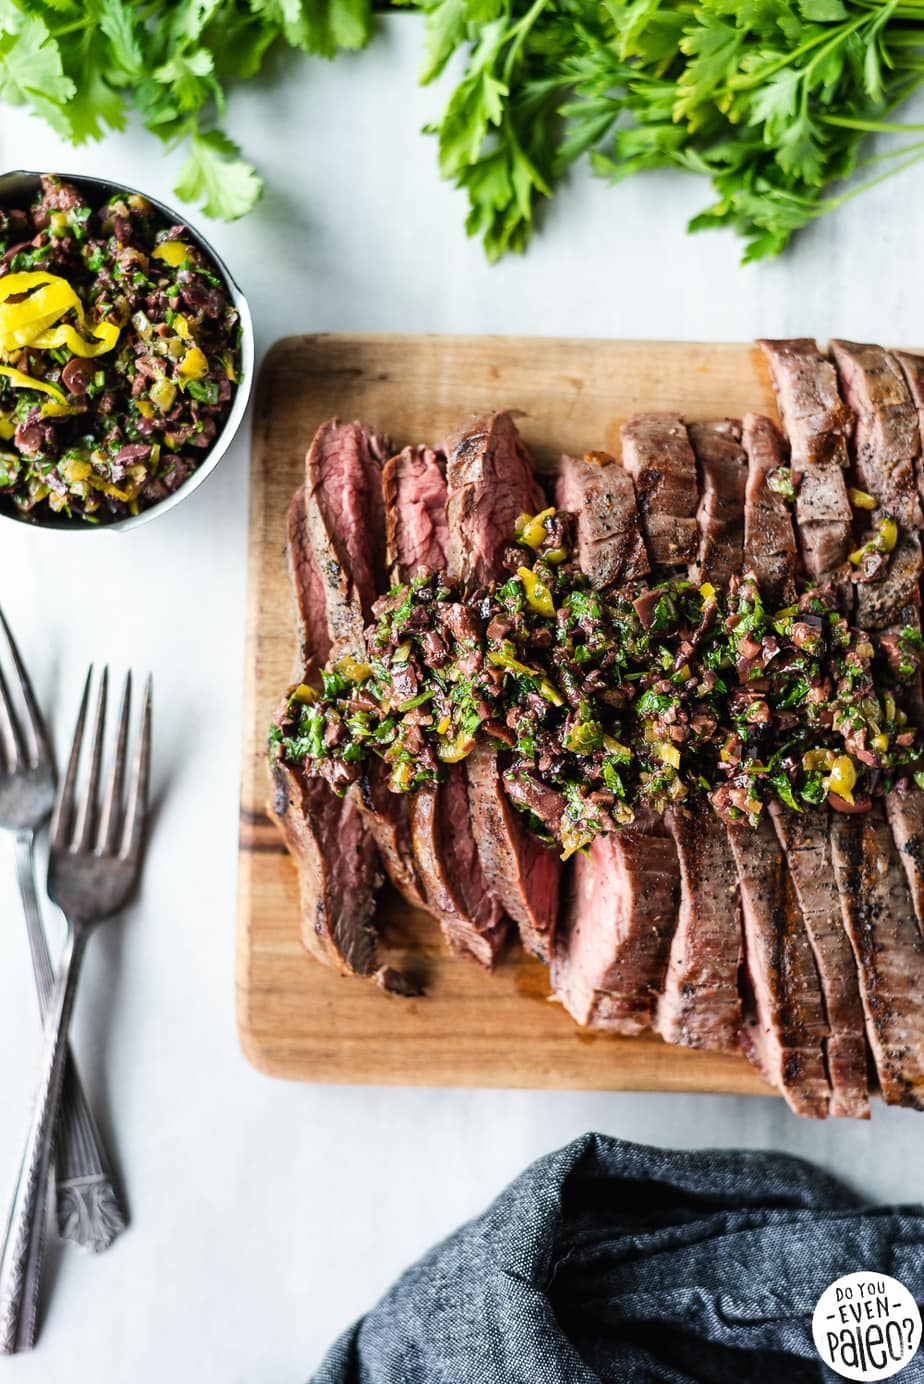 Paleo Grilled Flank Steak Recipe with Olive Herb Relish